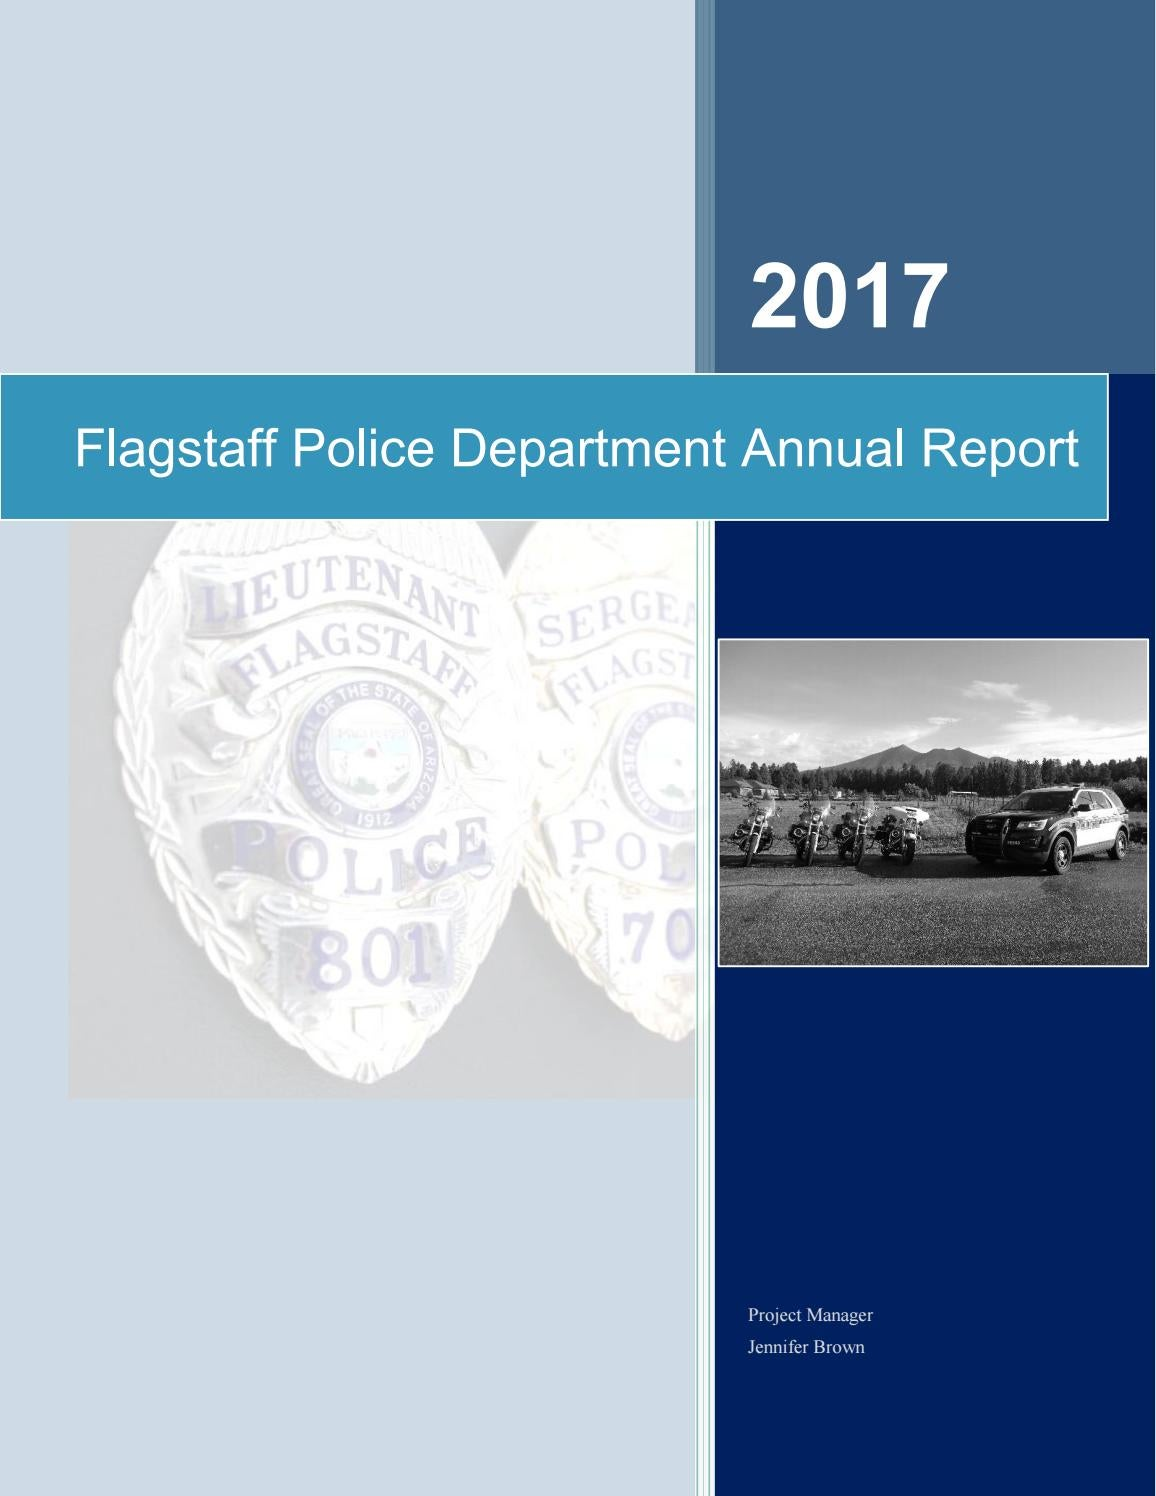 2017 Flagstaff Police Department Annual Report Revised by